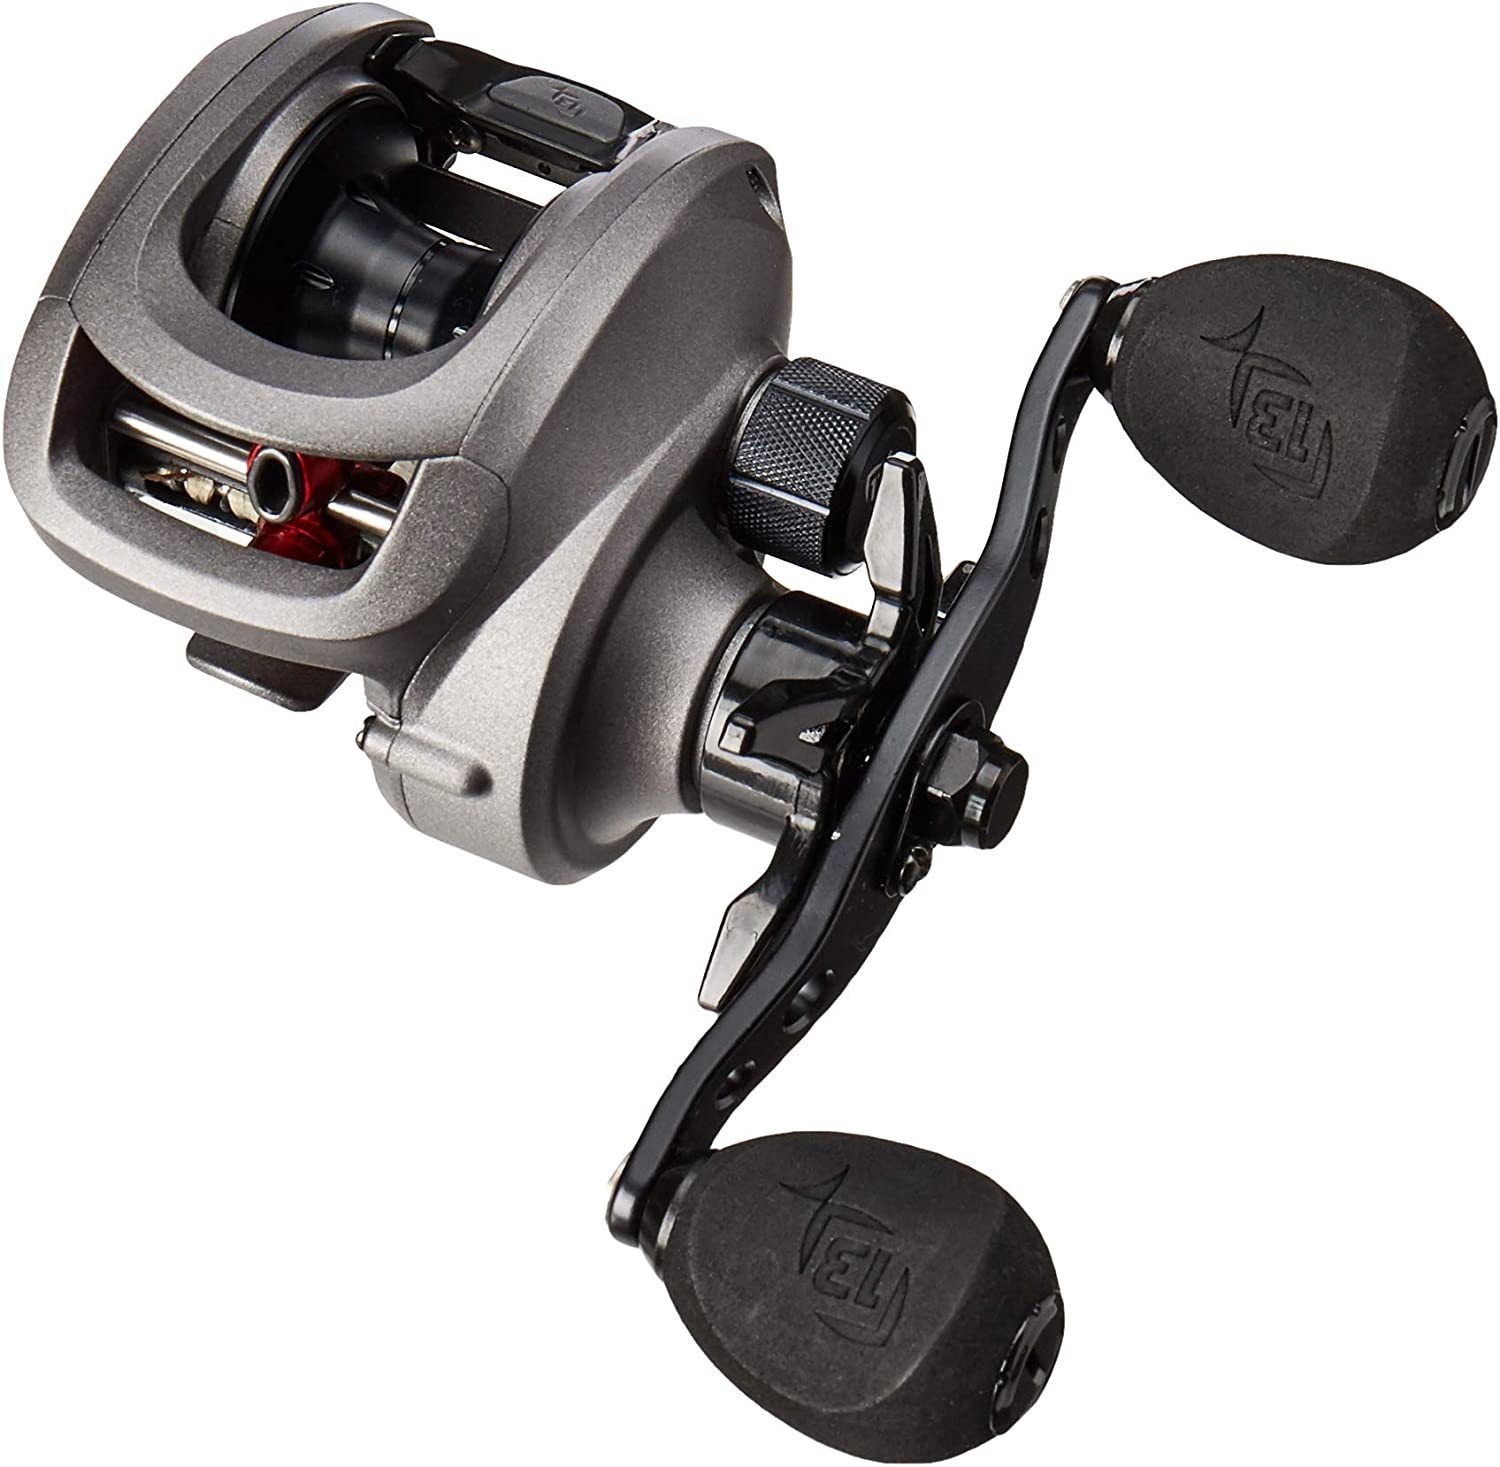 13 Fishing Inception 8.1 1 Gear Ratio Fishing Reel, Mens, 13 FISHING Inception 8.1 1 Gear Ratio LH FreshSalt Reel (IN8.1LH), IN8.1LH, LH, 8.1